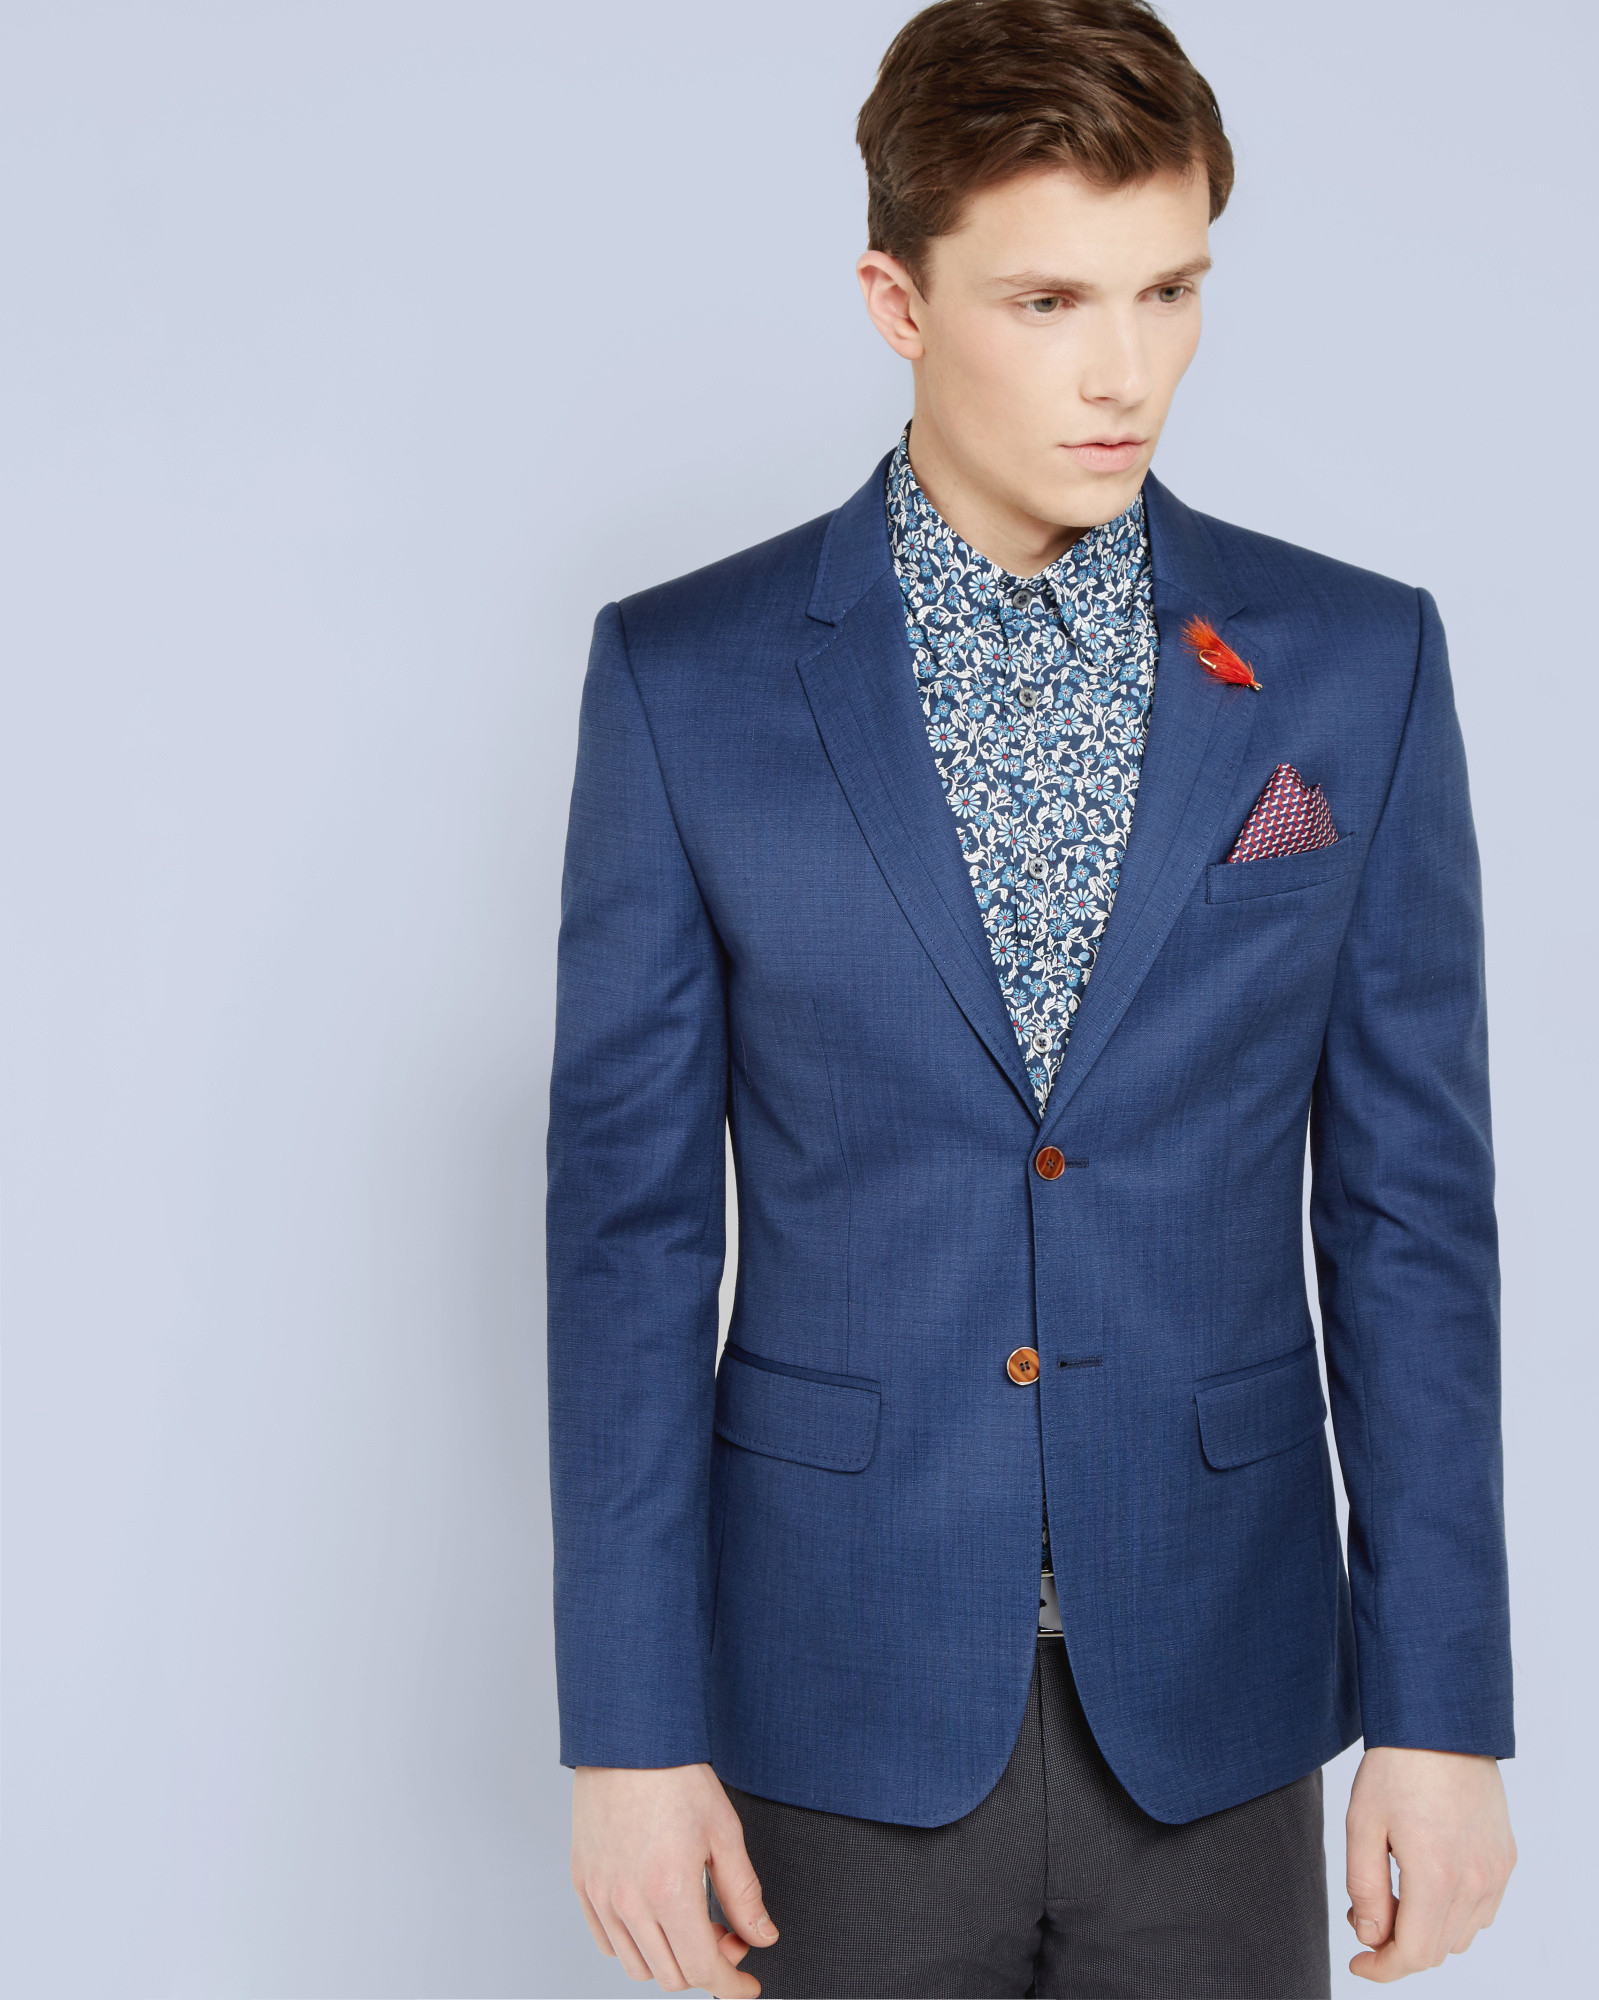 f0b5190ebb571 Lyst - Ted Baker Tight Lines Jacket in Blue for Men